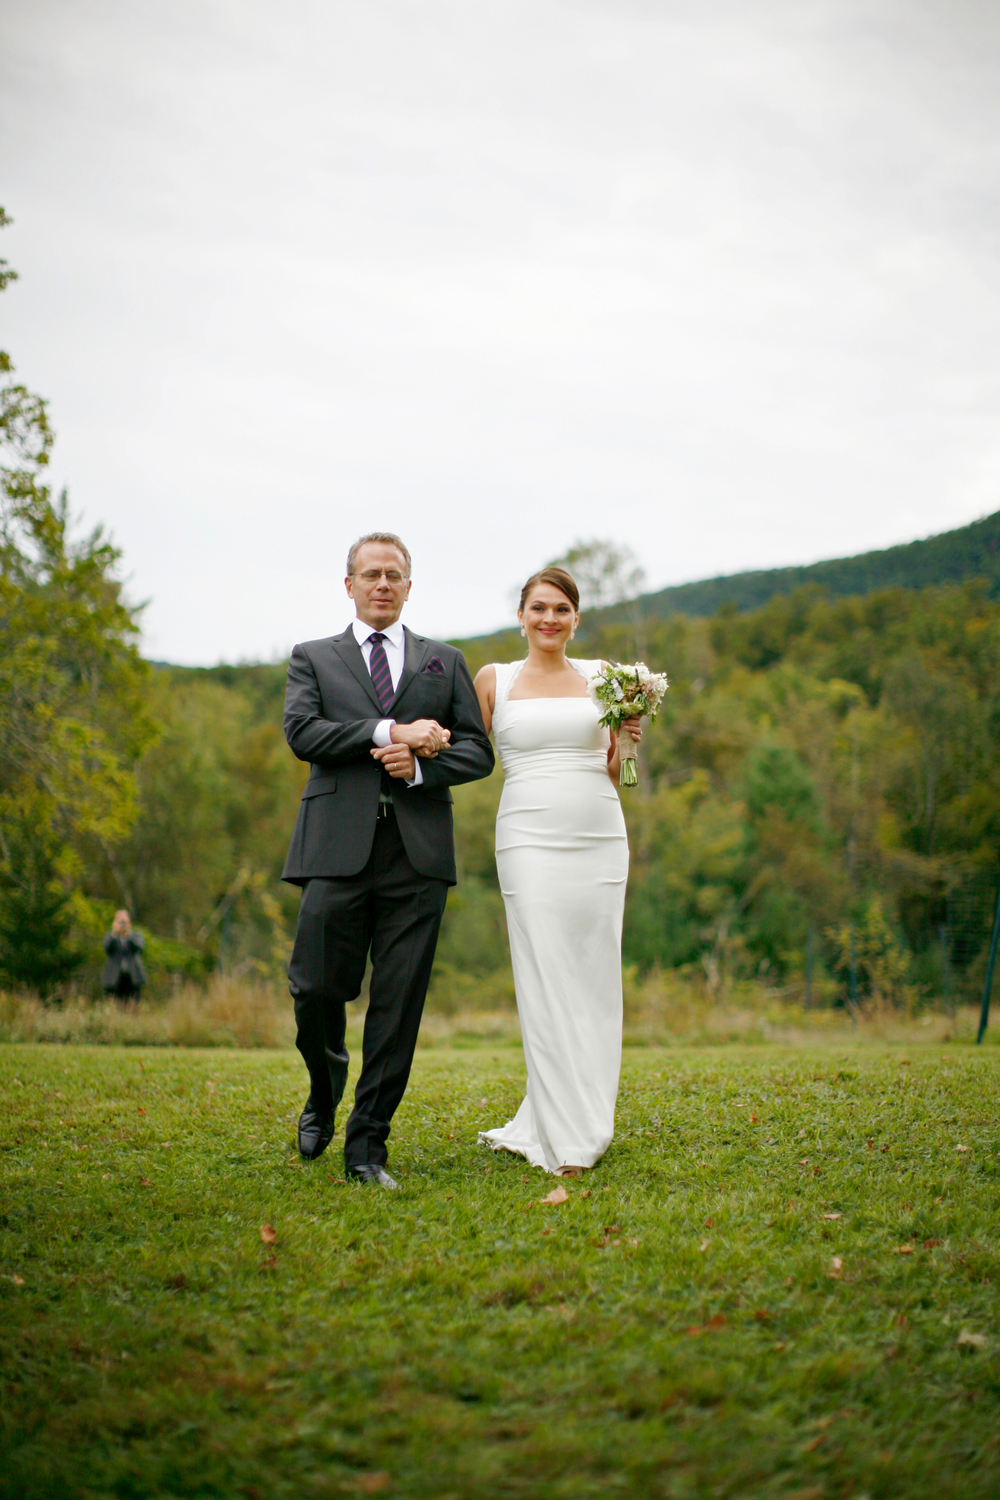 Heather + Ryan_Betsi Ewing Studio_024.JPG